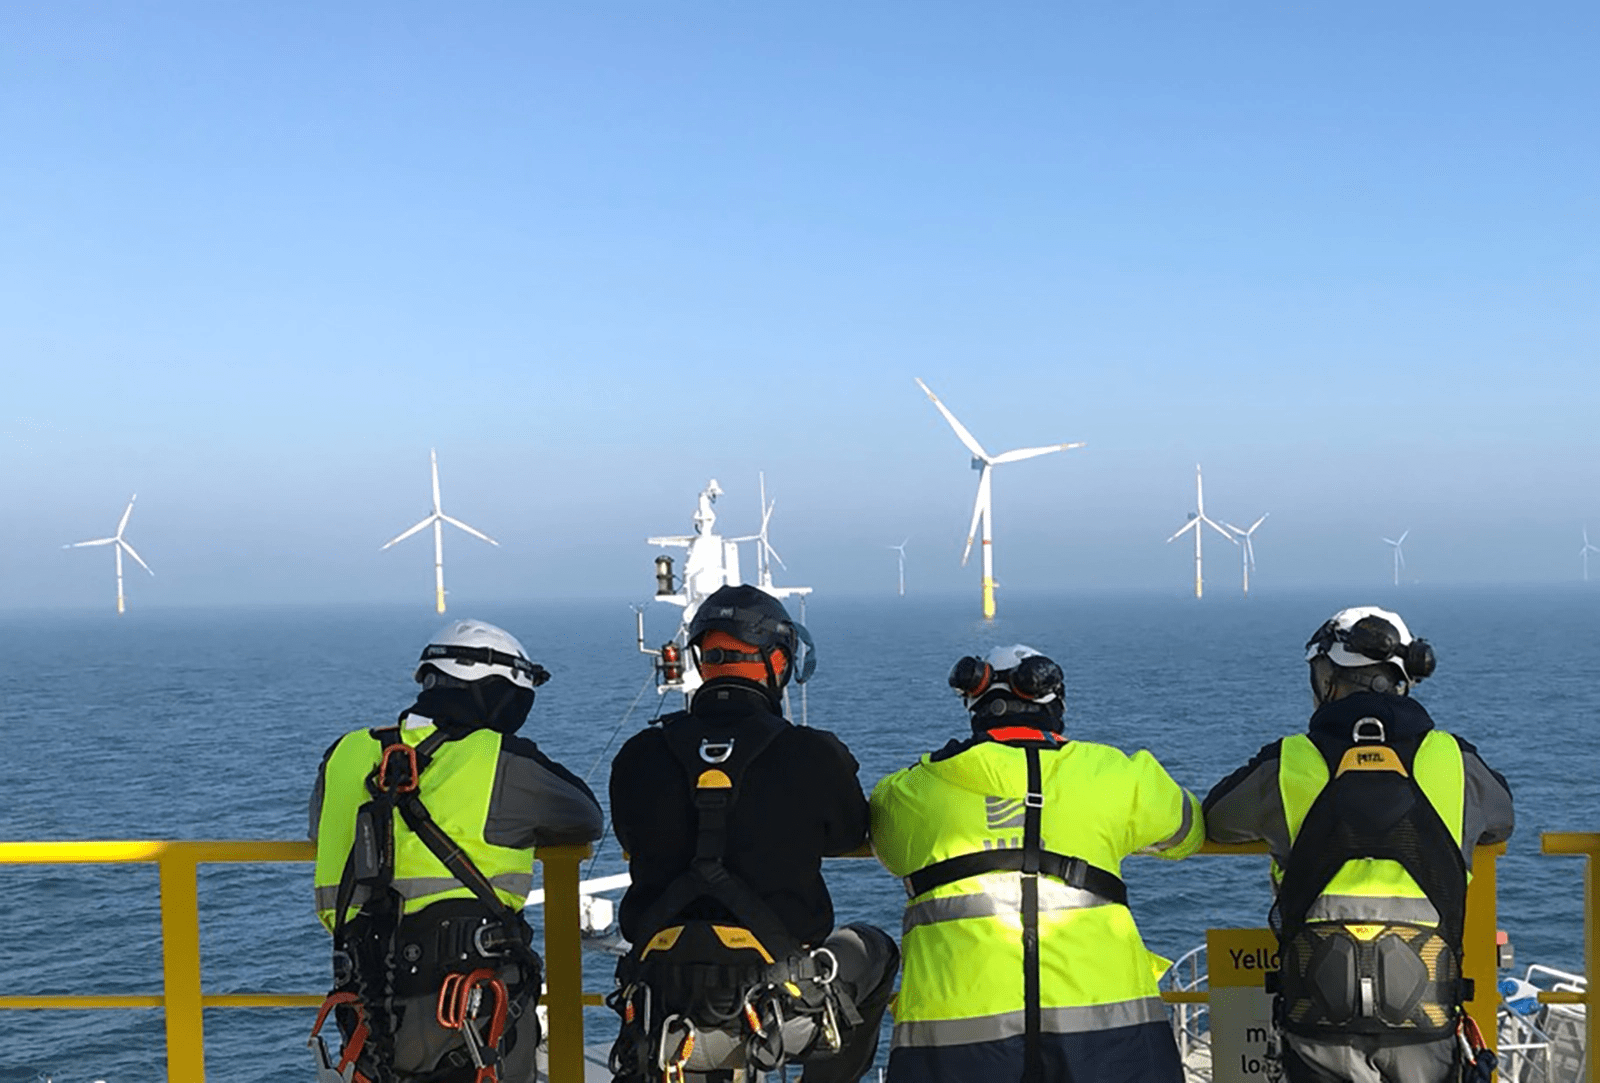 Offshore Wind Will Need Over 172,000 More GWO-Trained People by 2025 – Report